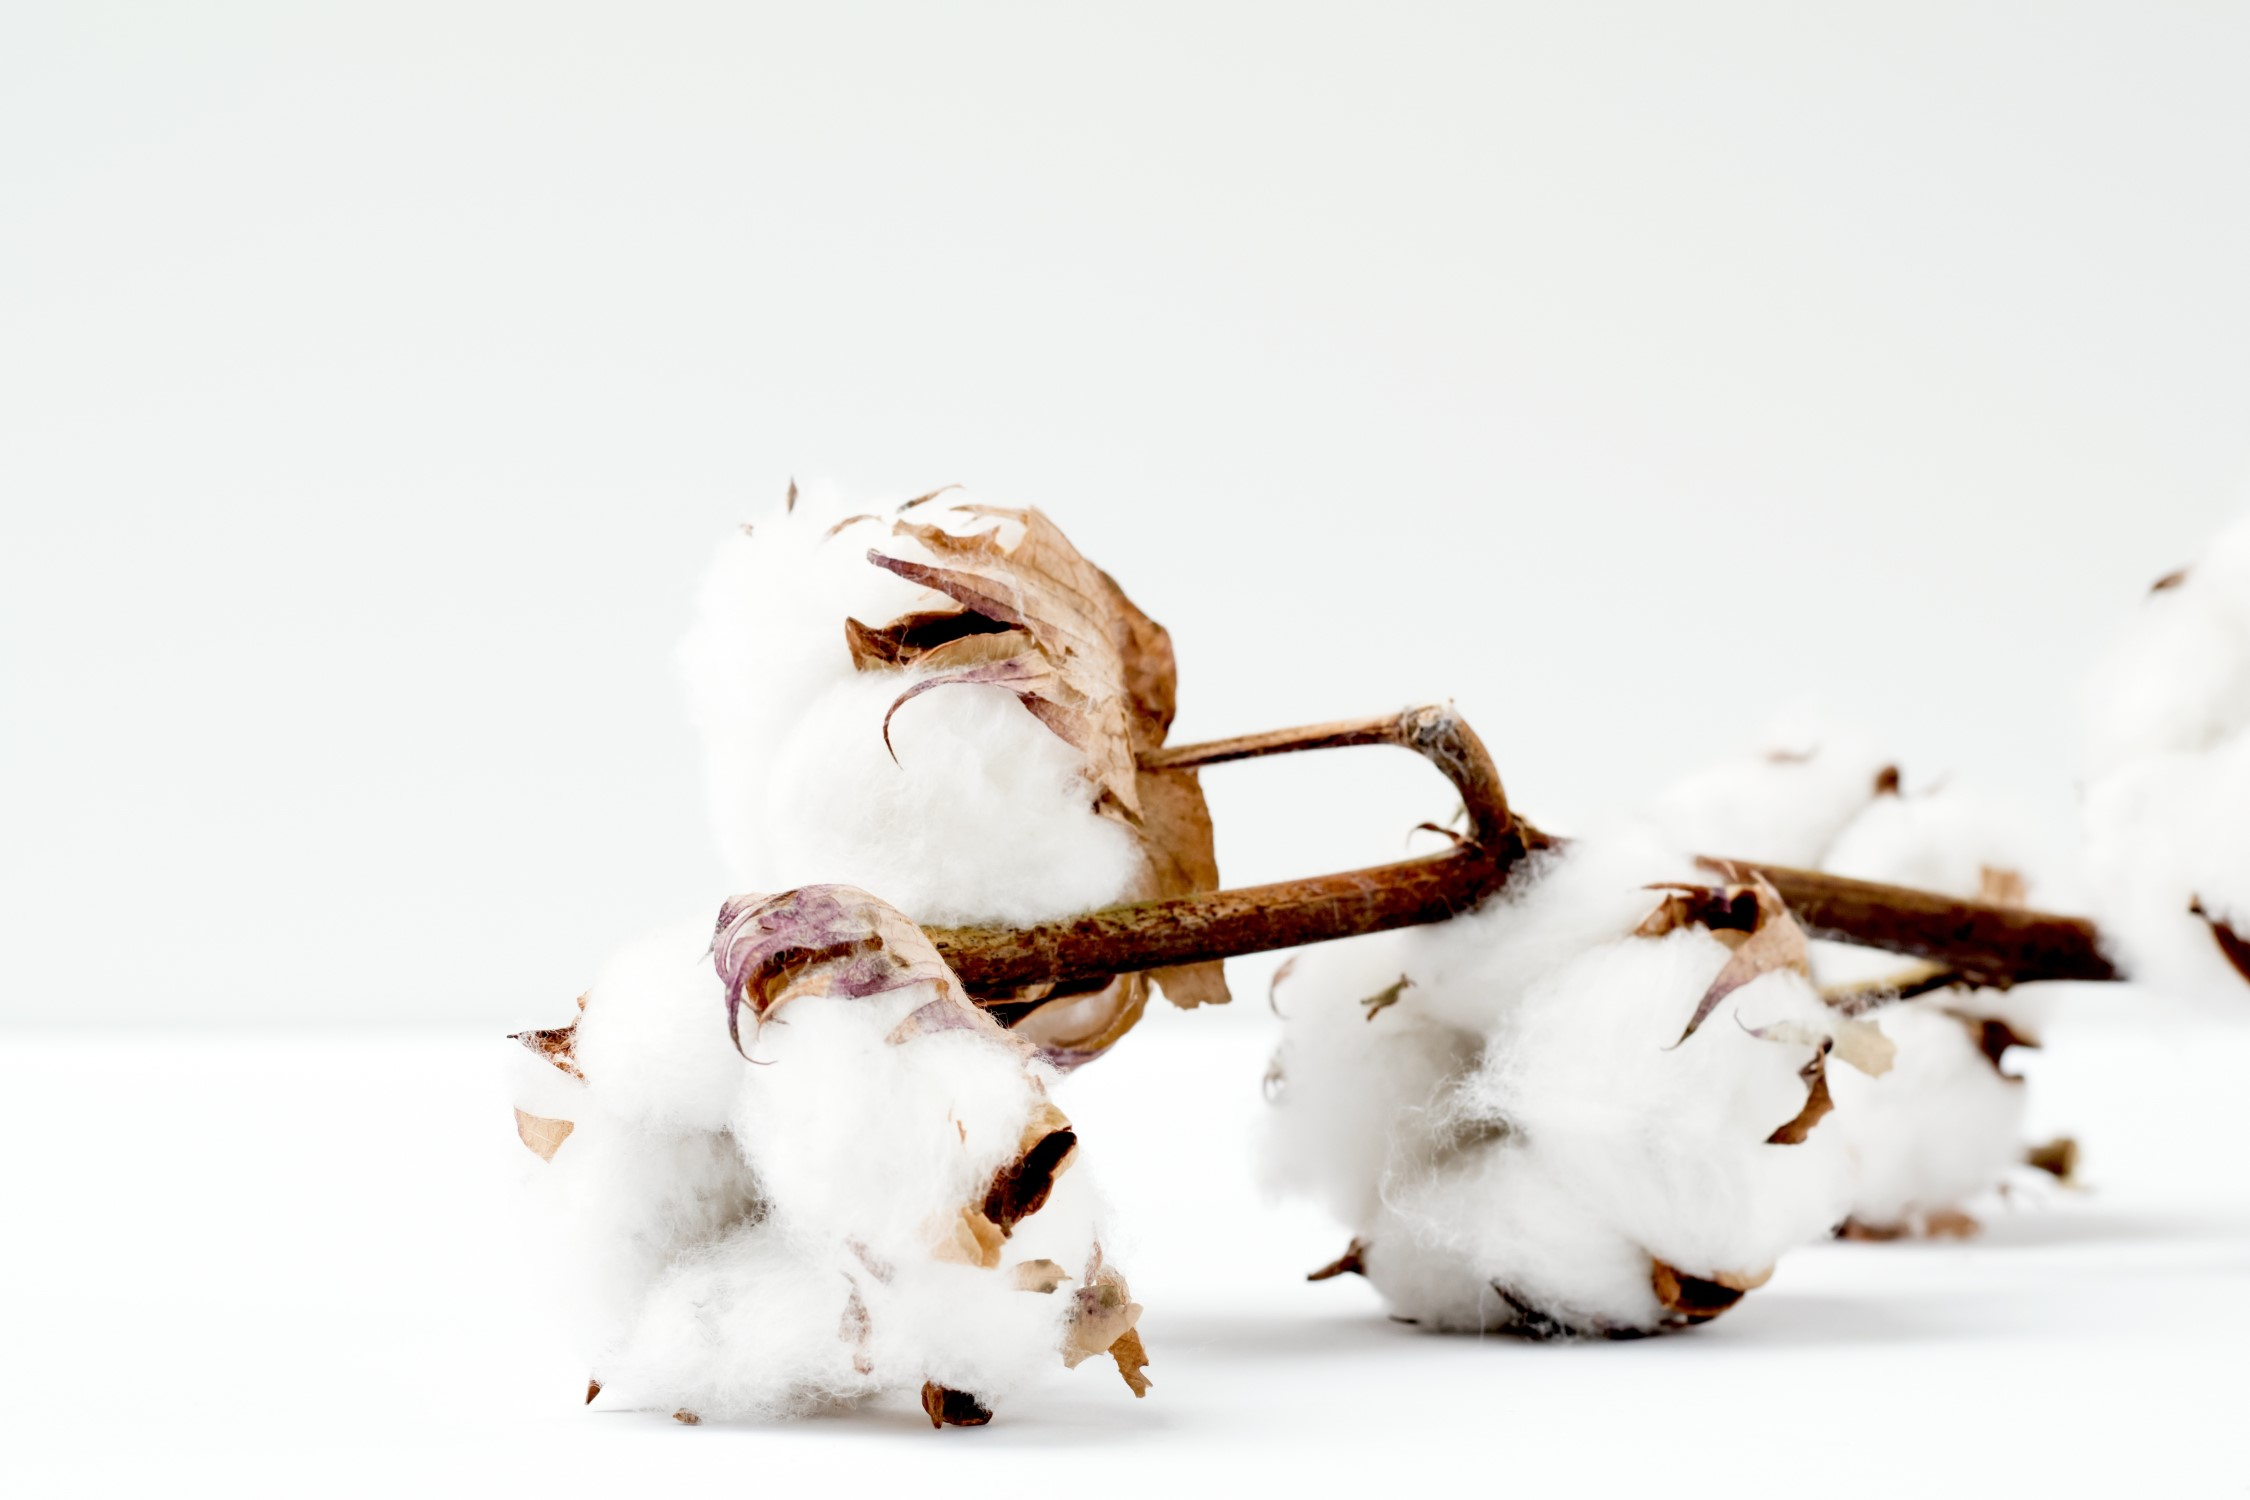 cotton unsplash.jpg